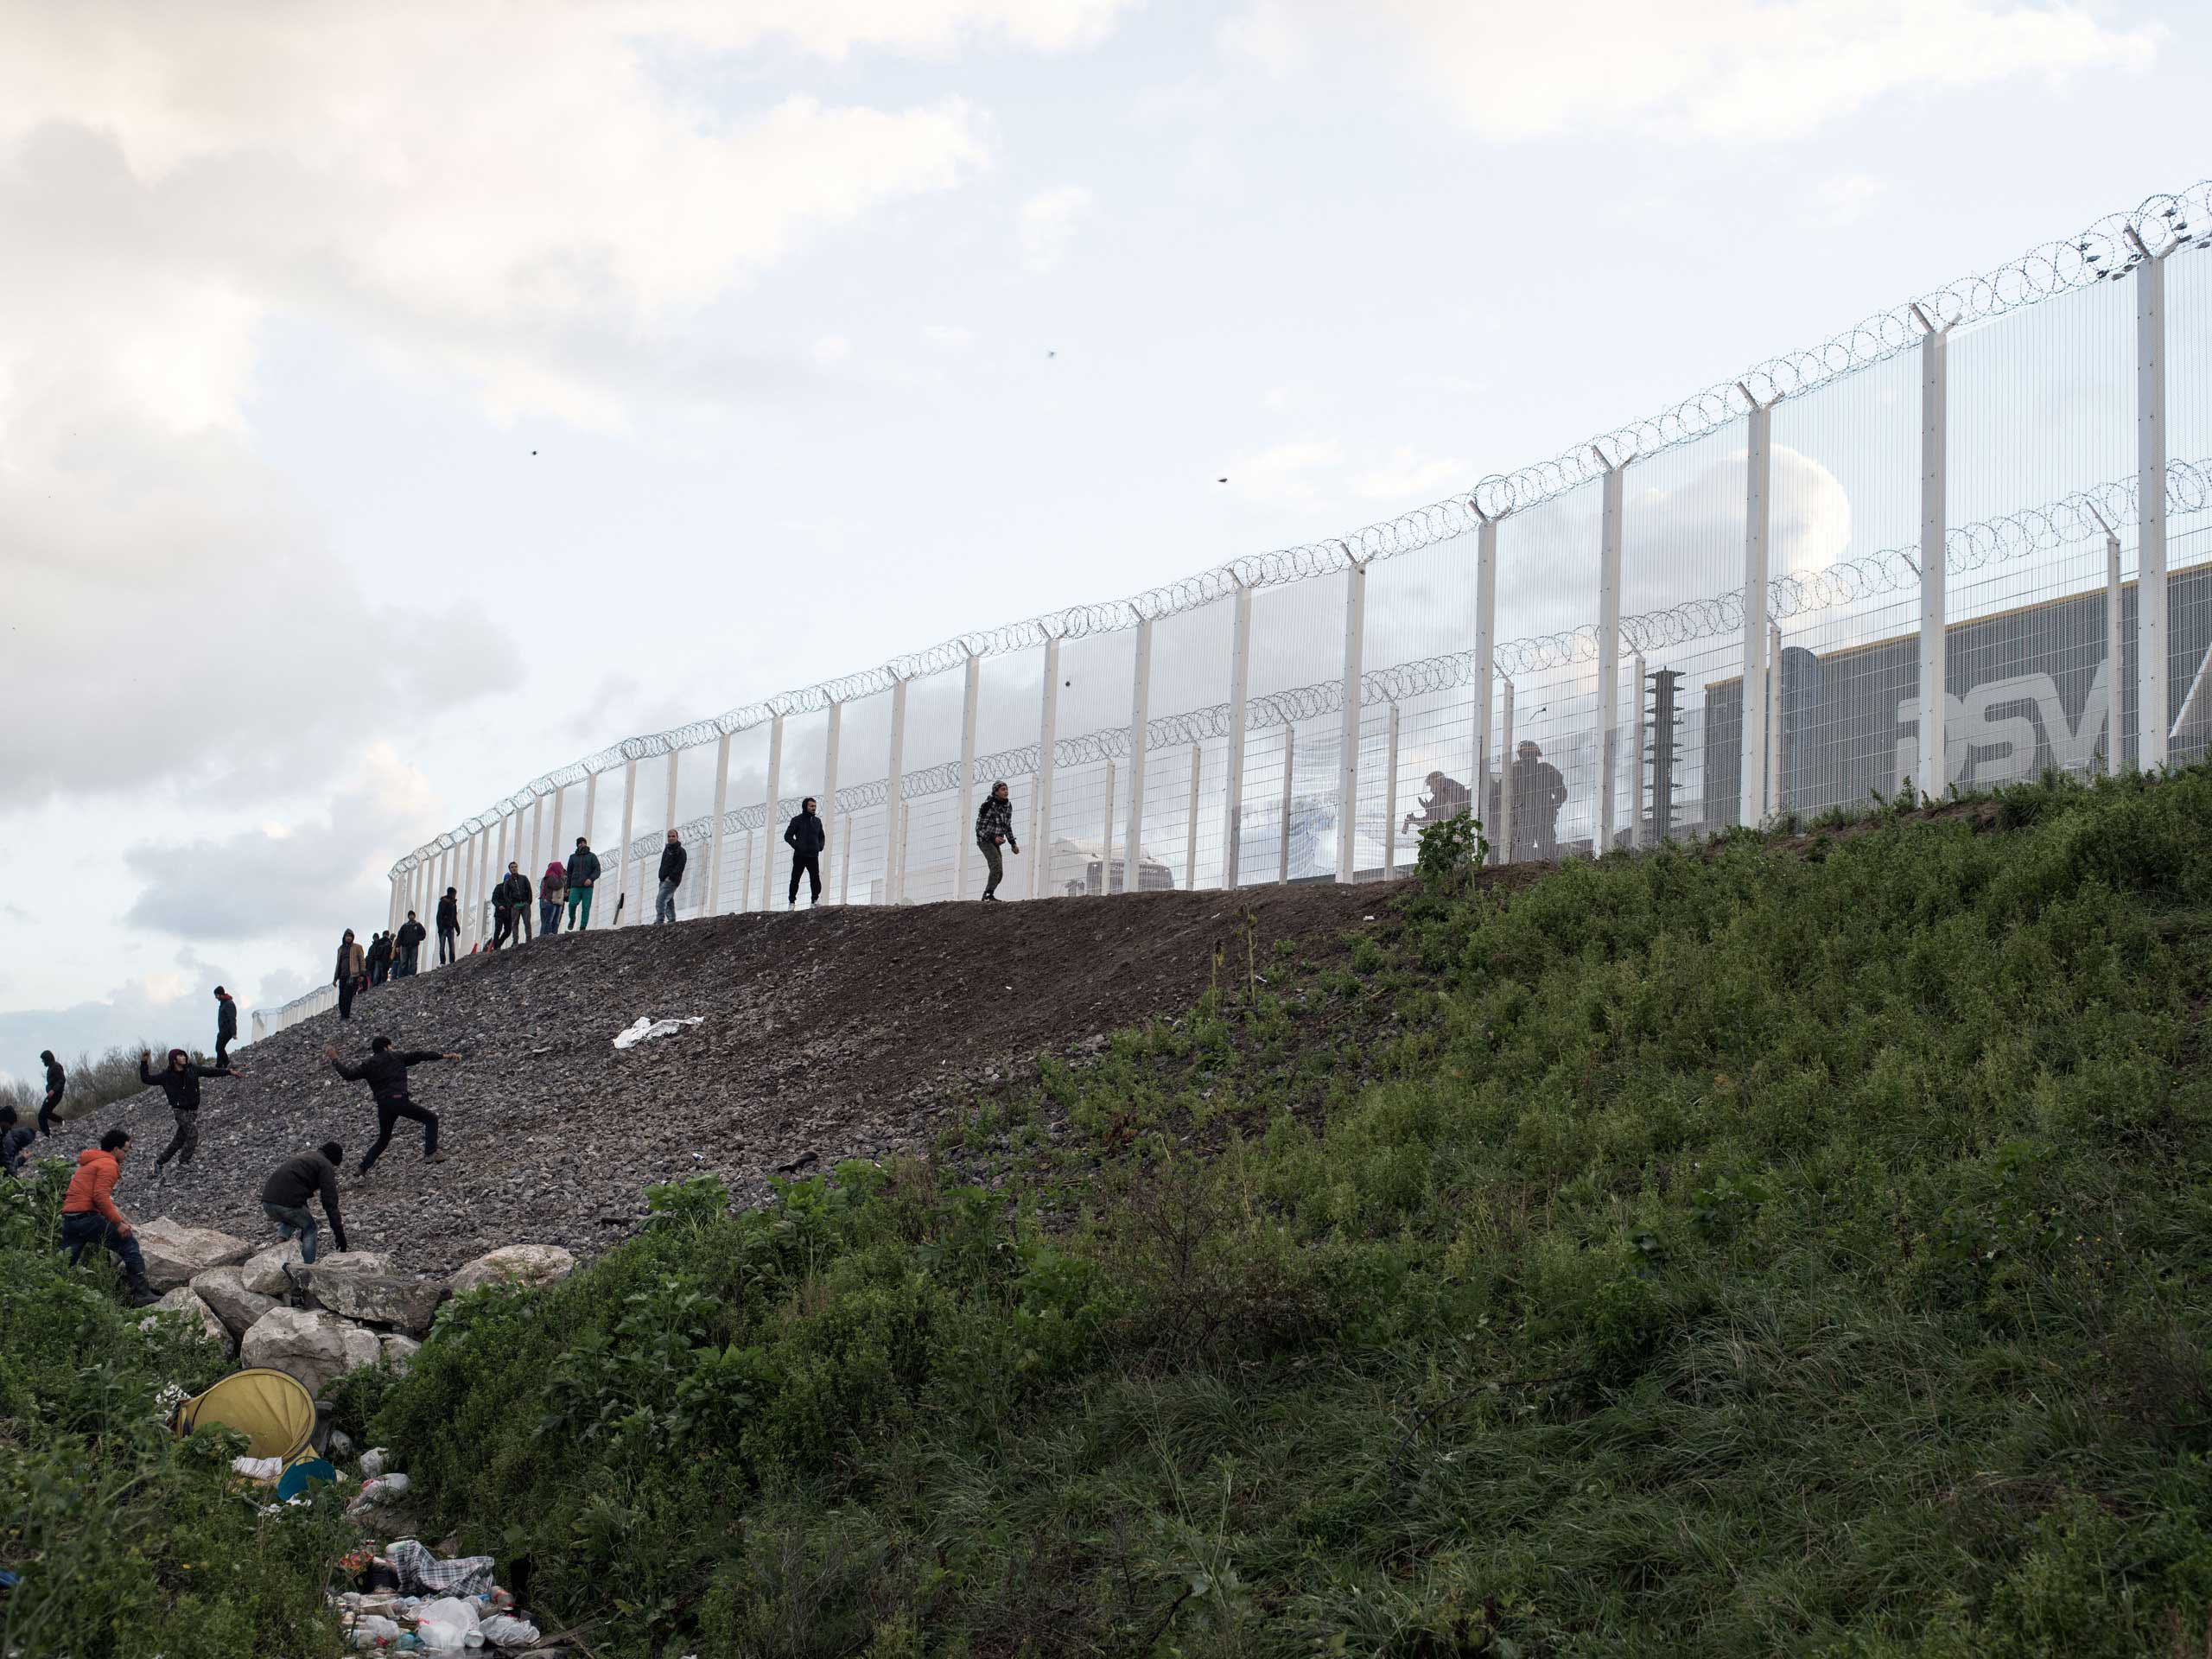 Clashes between migrants from the  jungle  in Calais, France and police have increased in frequency, Nov. 25. 2015.